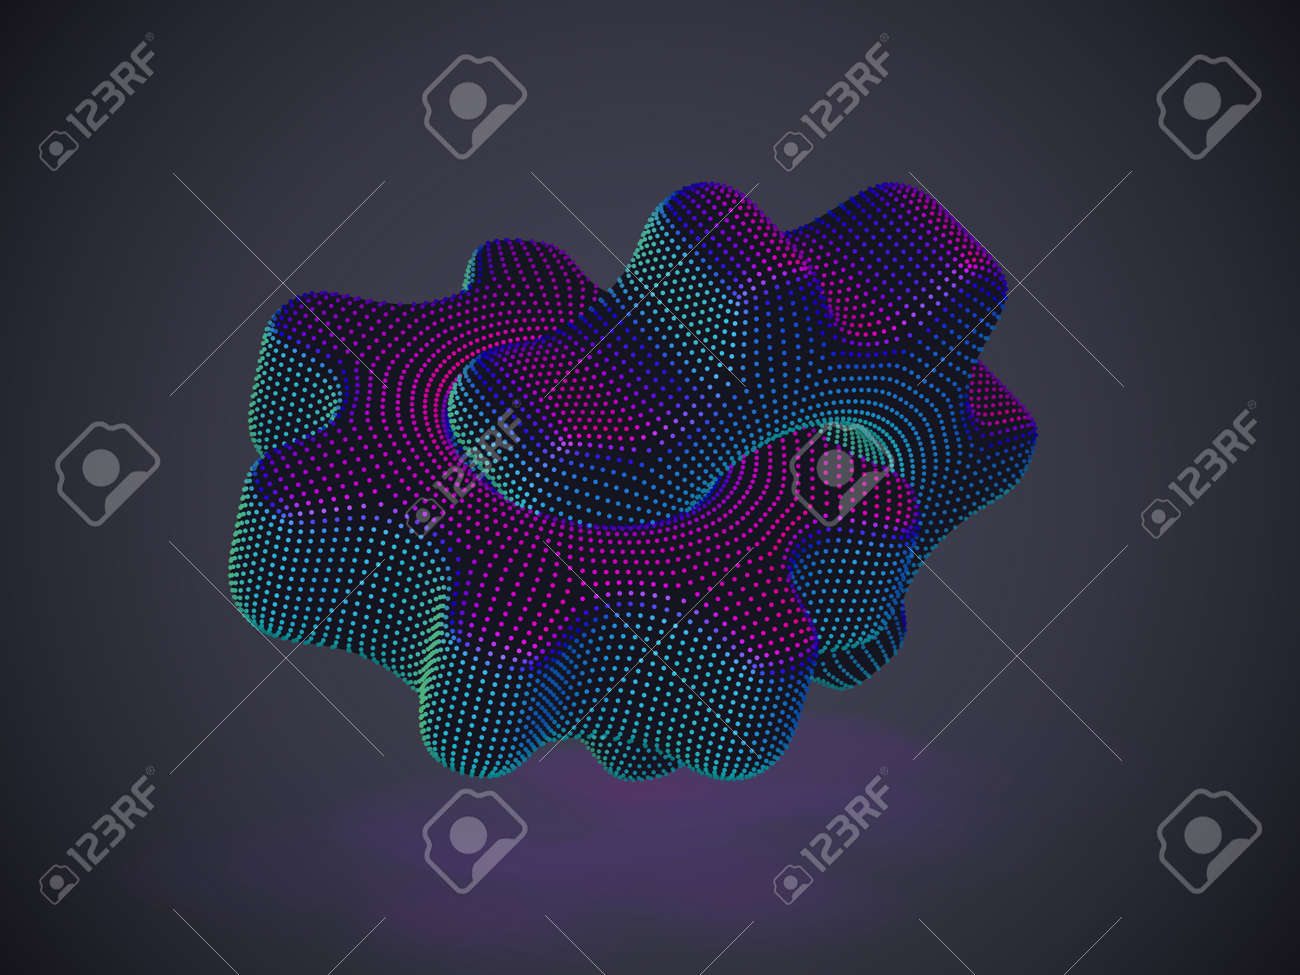 3D gears made of neon dots on gray background. Abstract vector illustration (EPS 10) of digital futuristic cogwheels. Concept of business partnership, online support and information technology. - 160046538